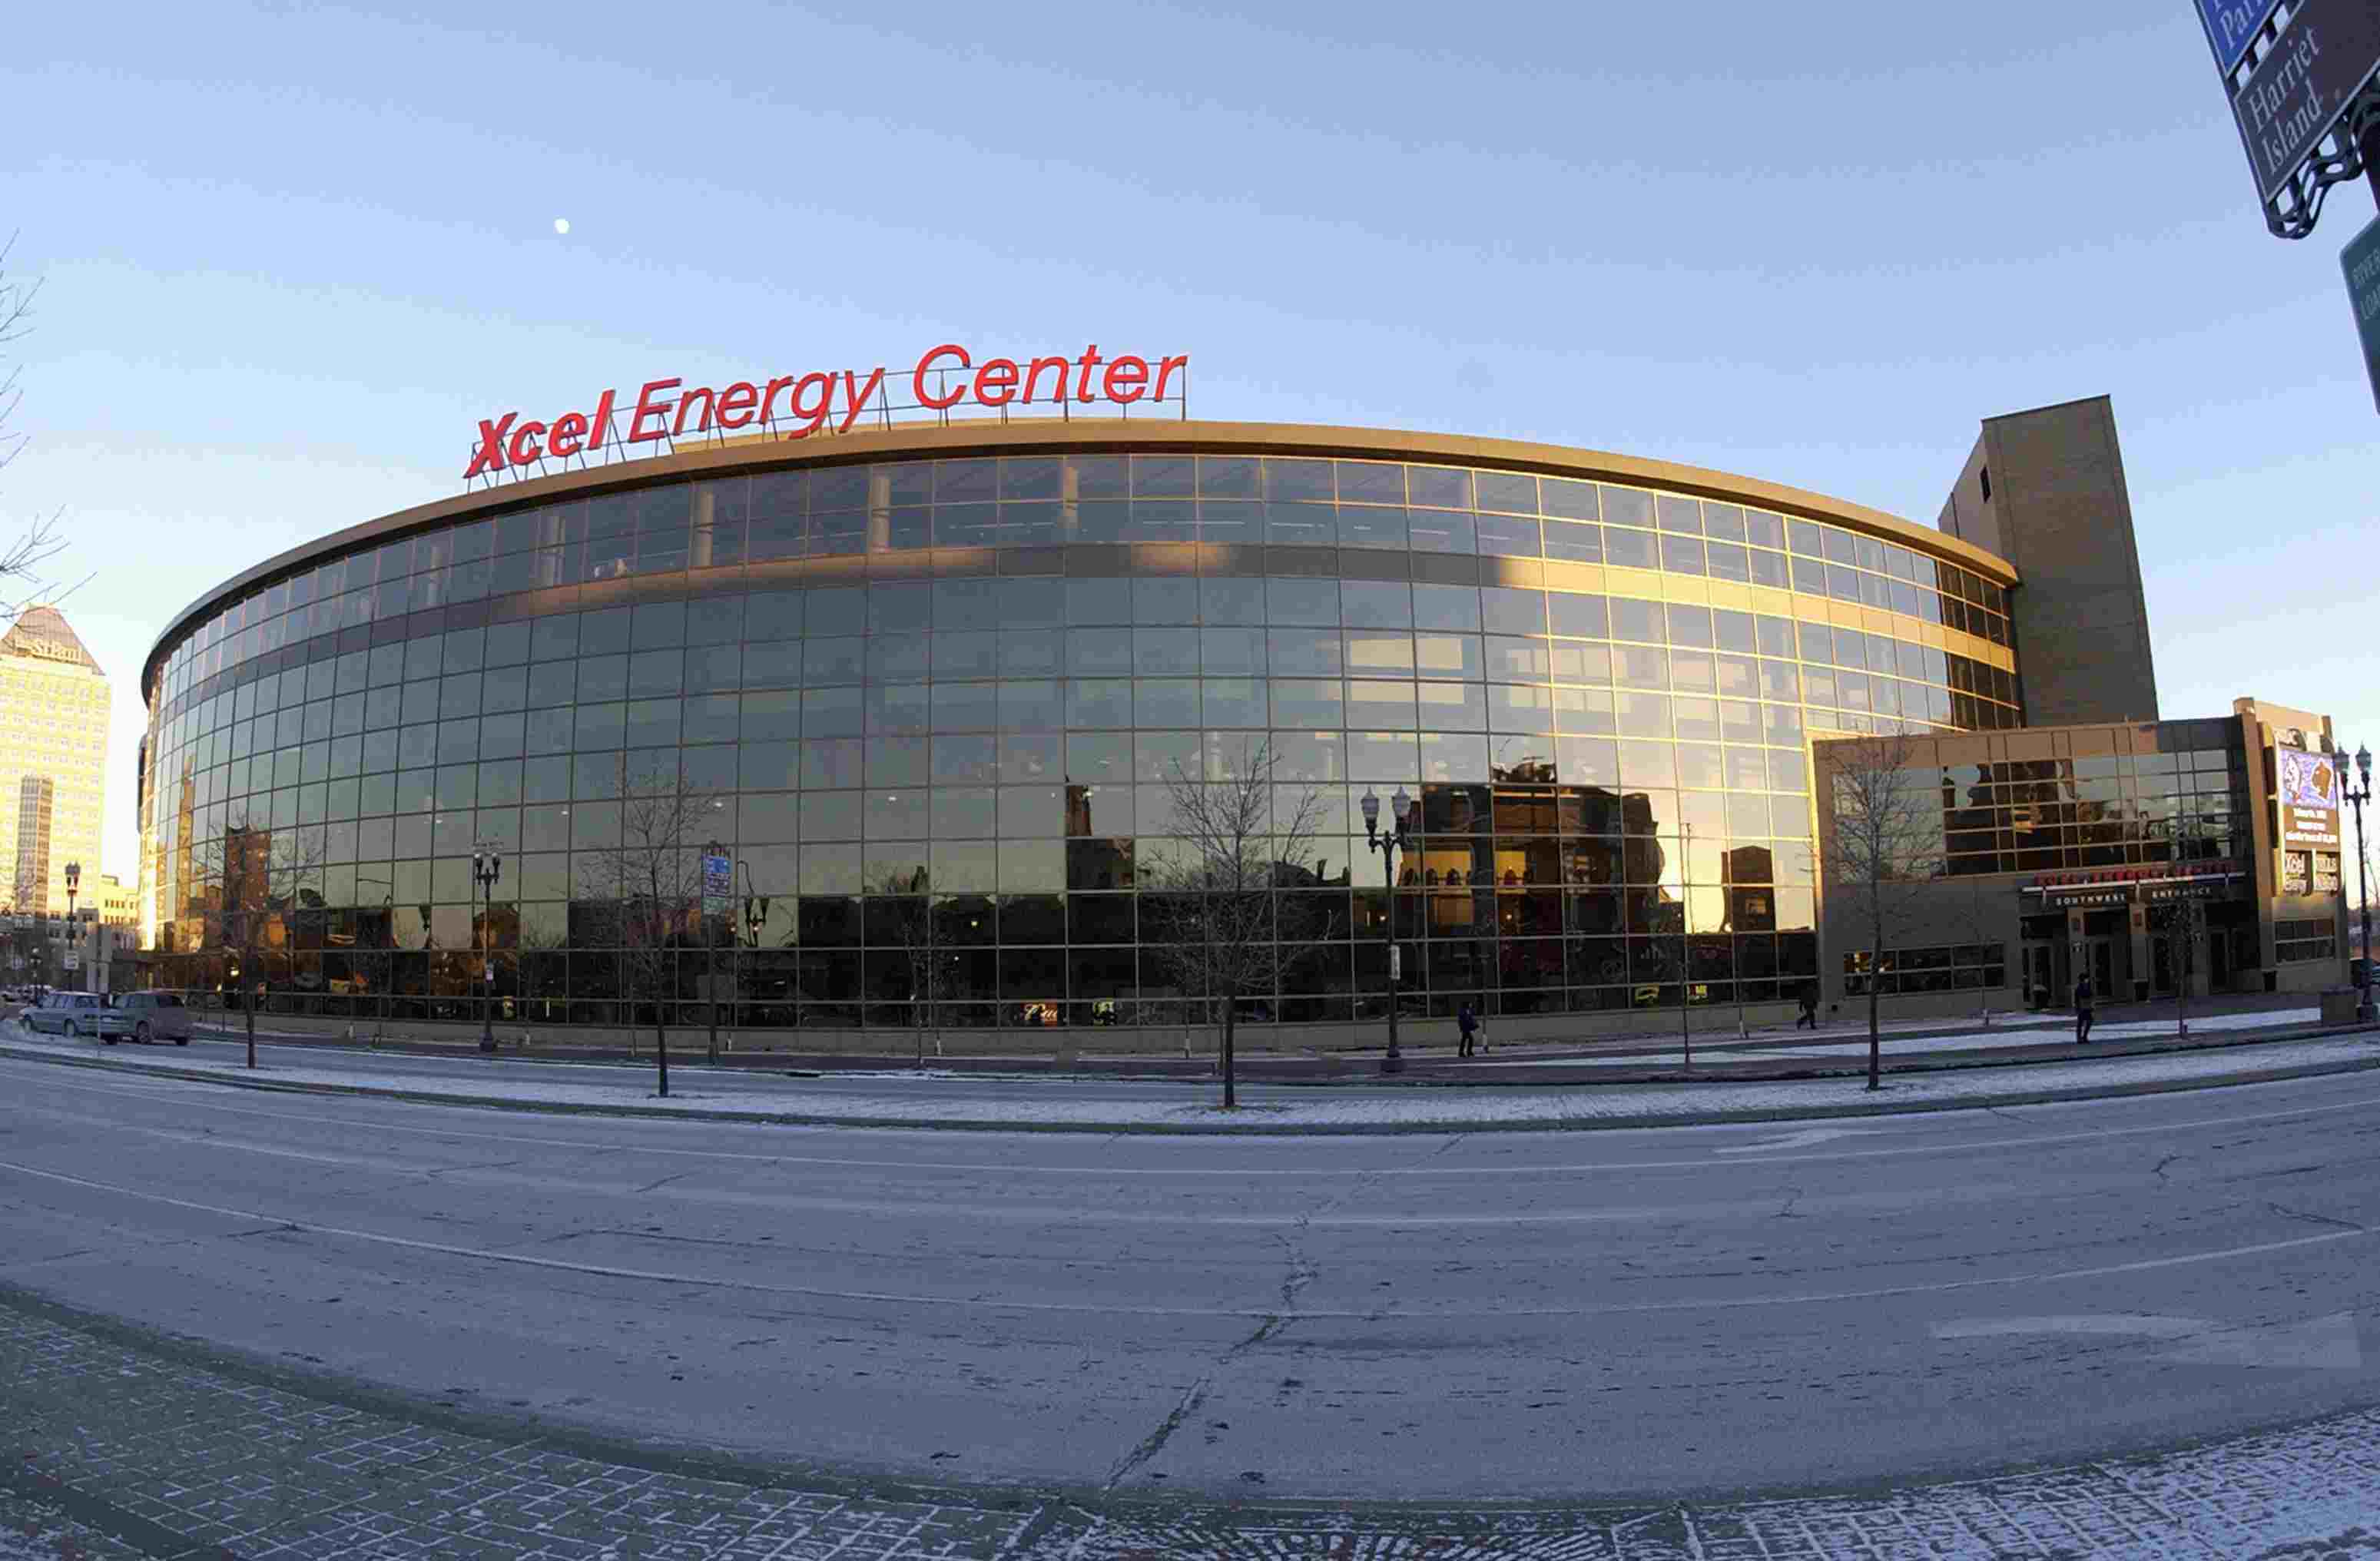 Xcel Energy Center in Saint Paul, Minnesota displays its curved wall of glass